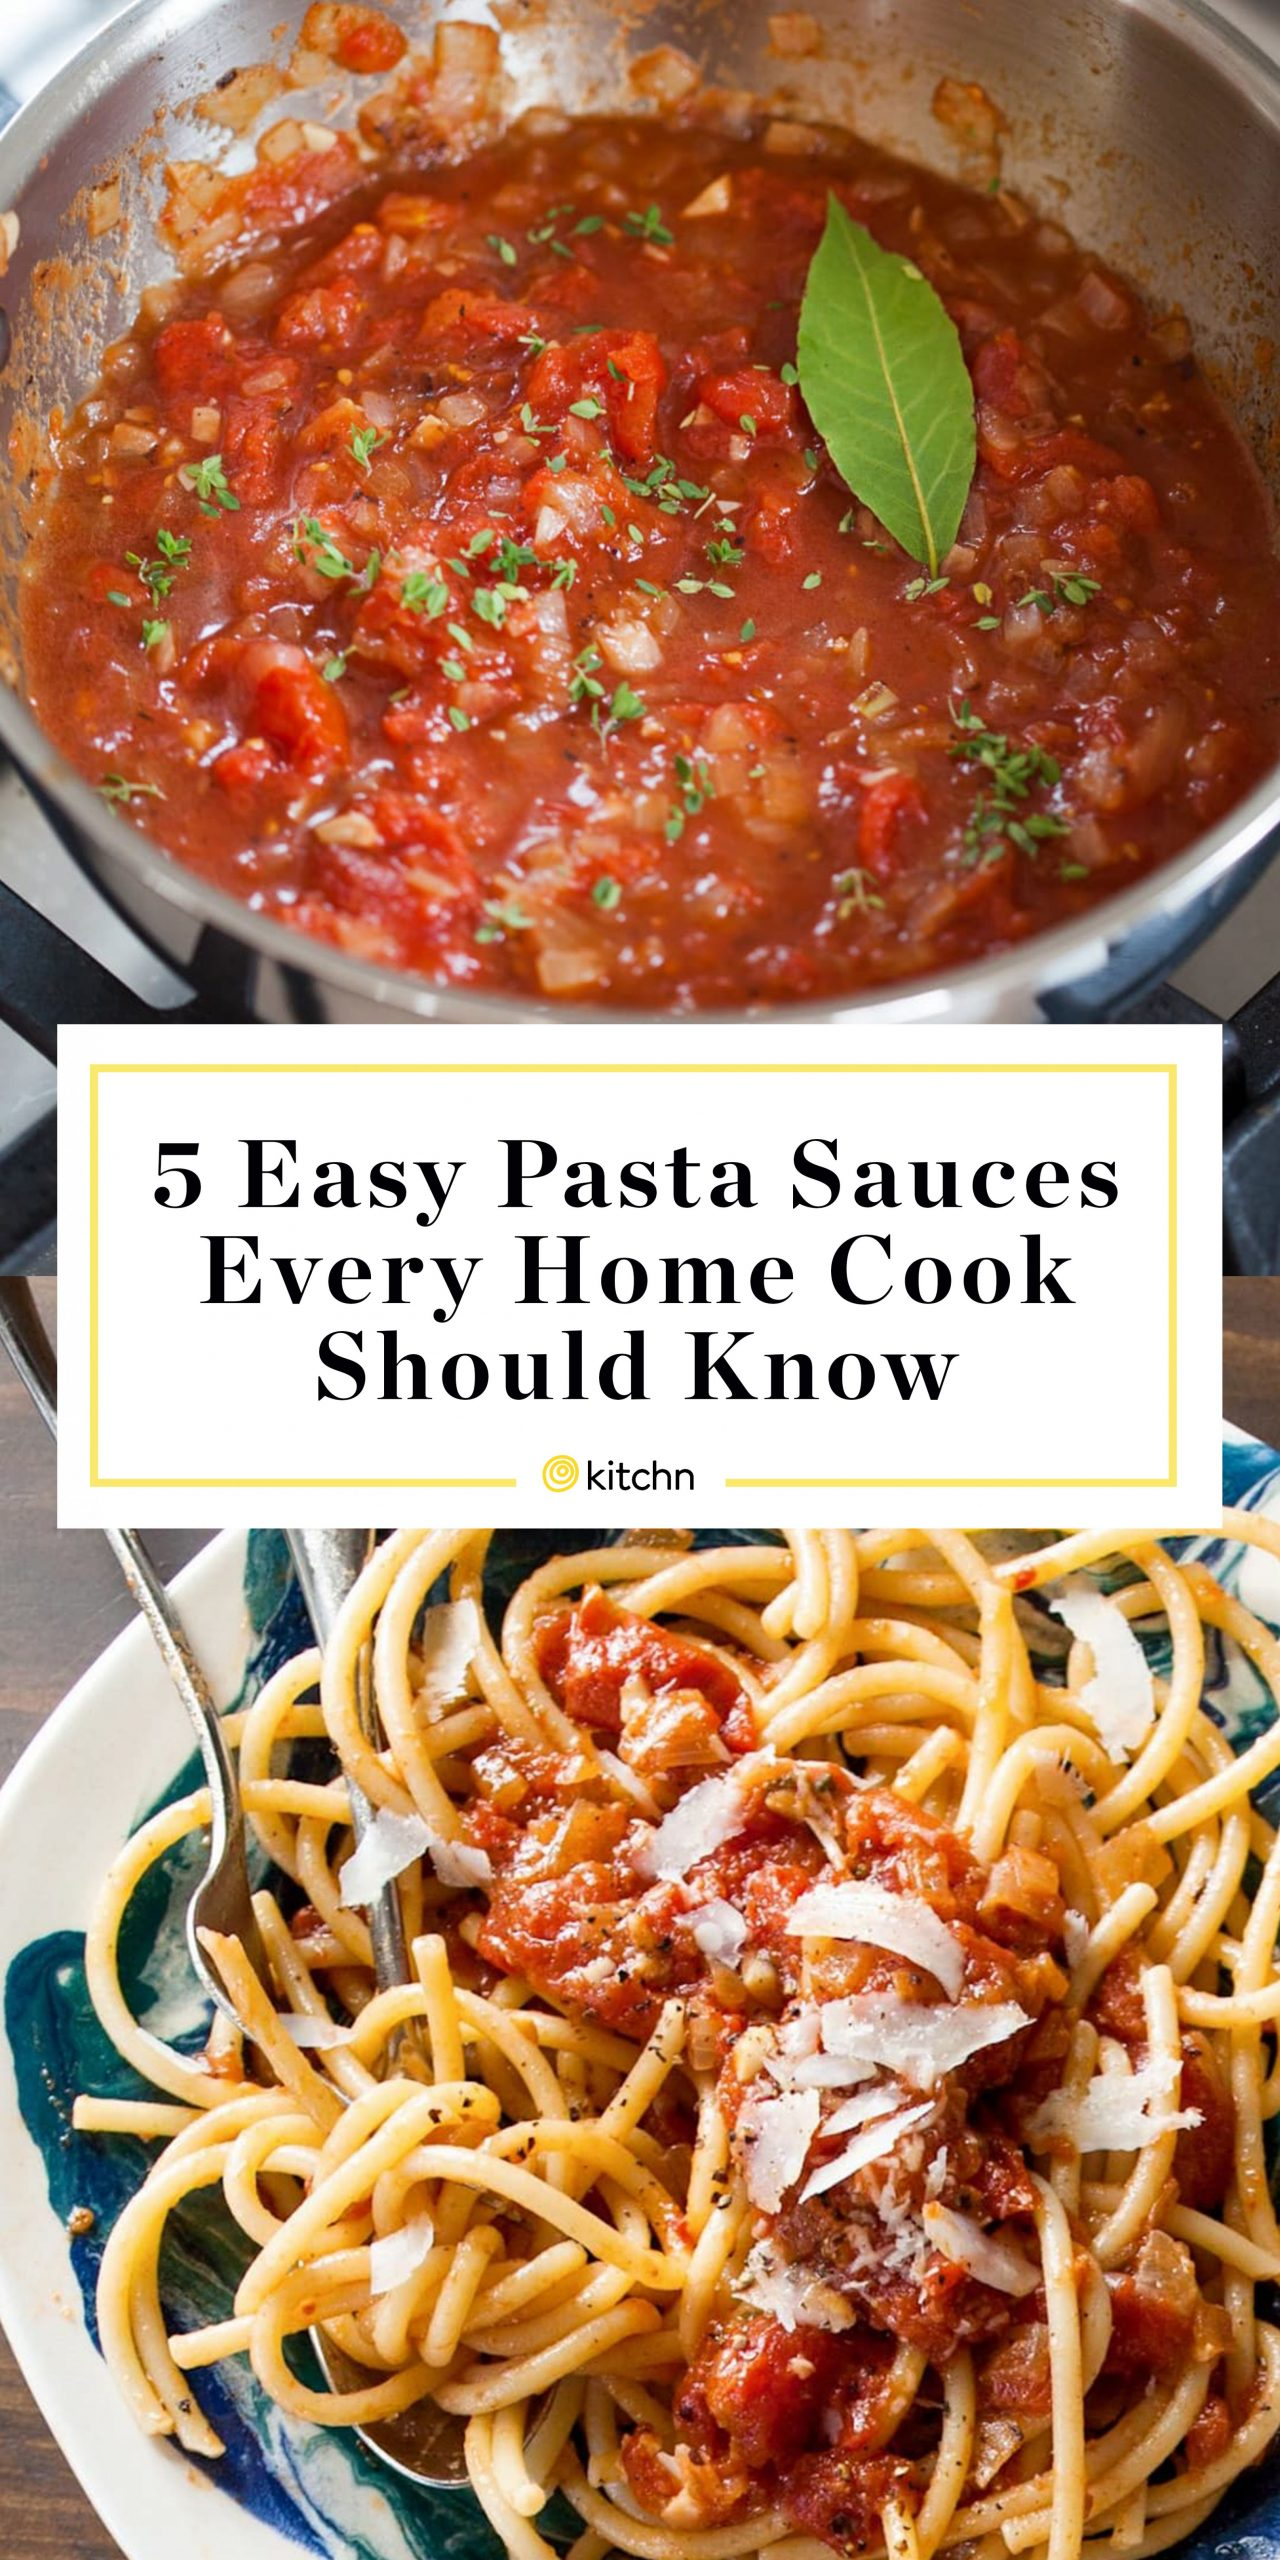 11 Easy Pasta Sauces Every Home Cook Should Know | Kitchn - Recipes Pasta Sauce